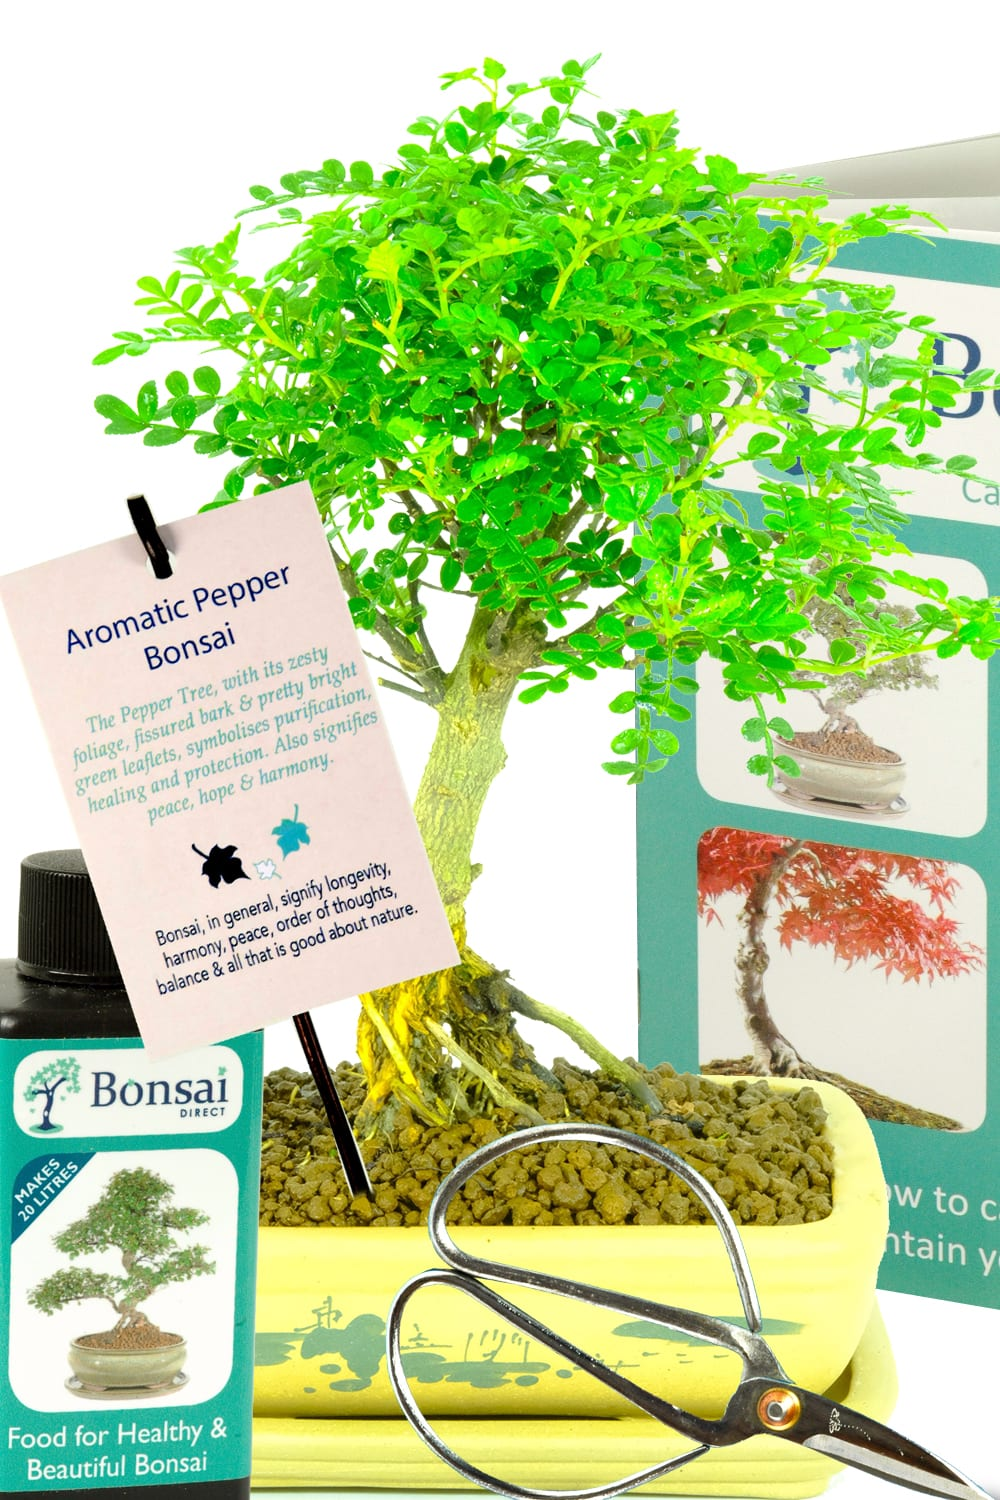 Stunning premium range pepper bonsai kit for health and healing